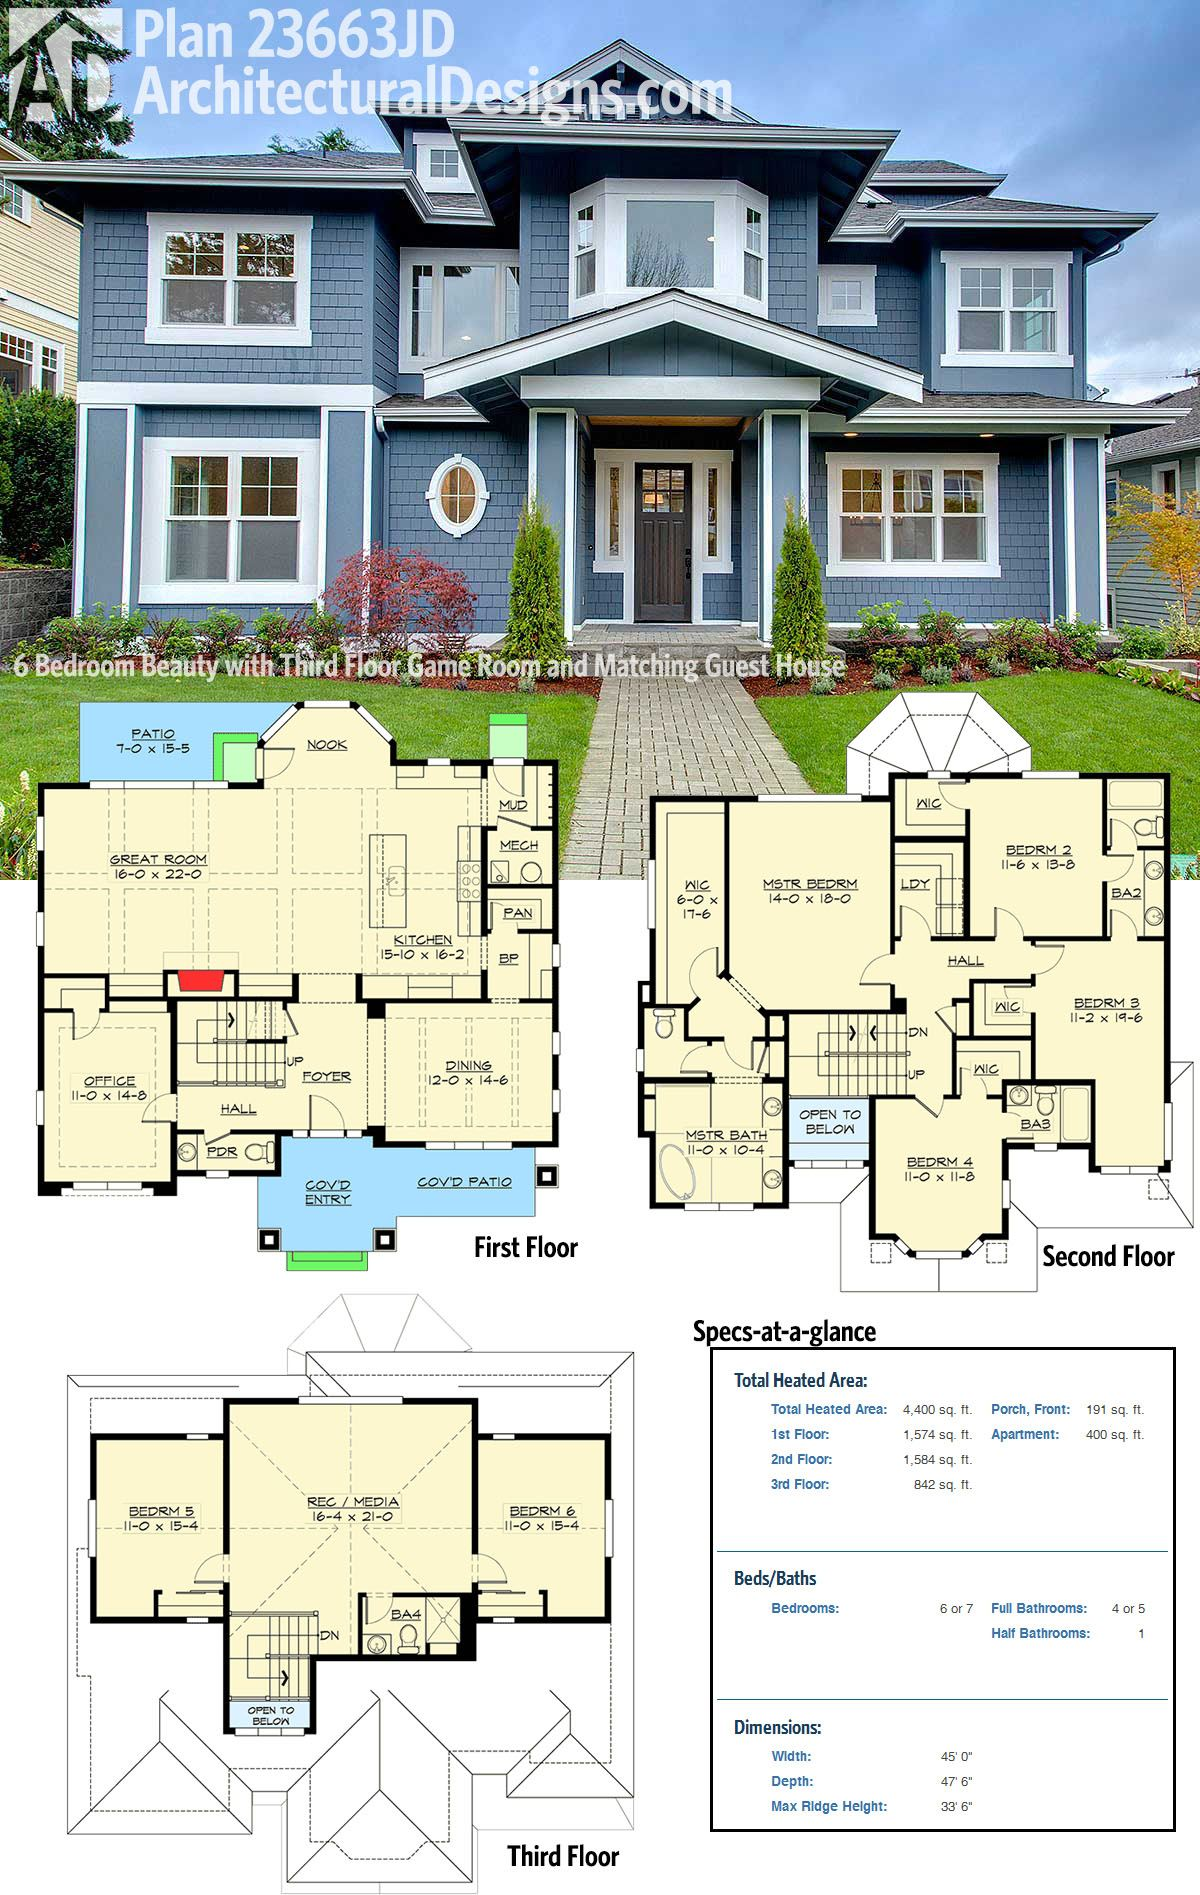 Plan 23663jd 6 Bedroom Beauty With Third Floor Game Room And